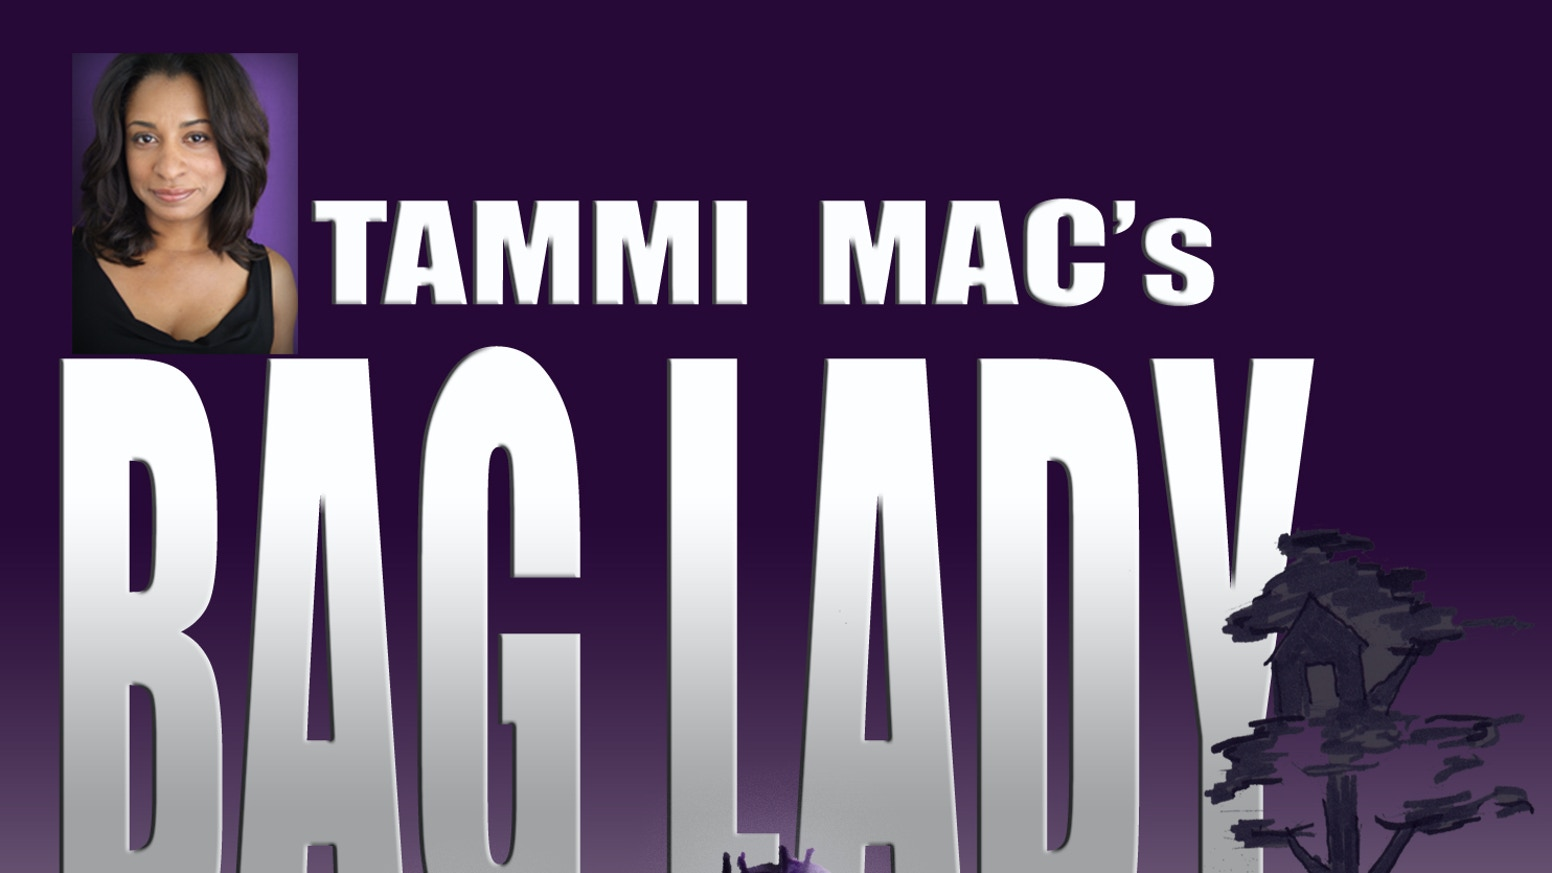 Bag Lady: A One Woman Show & Webseries